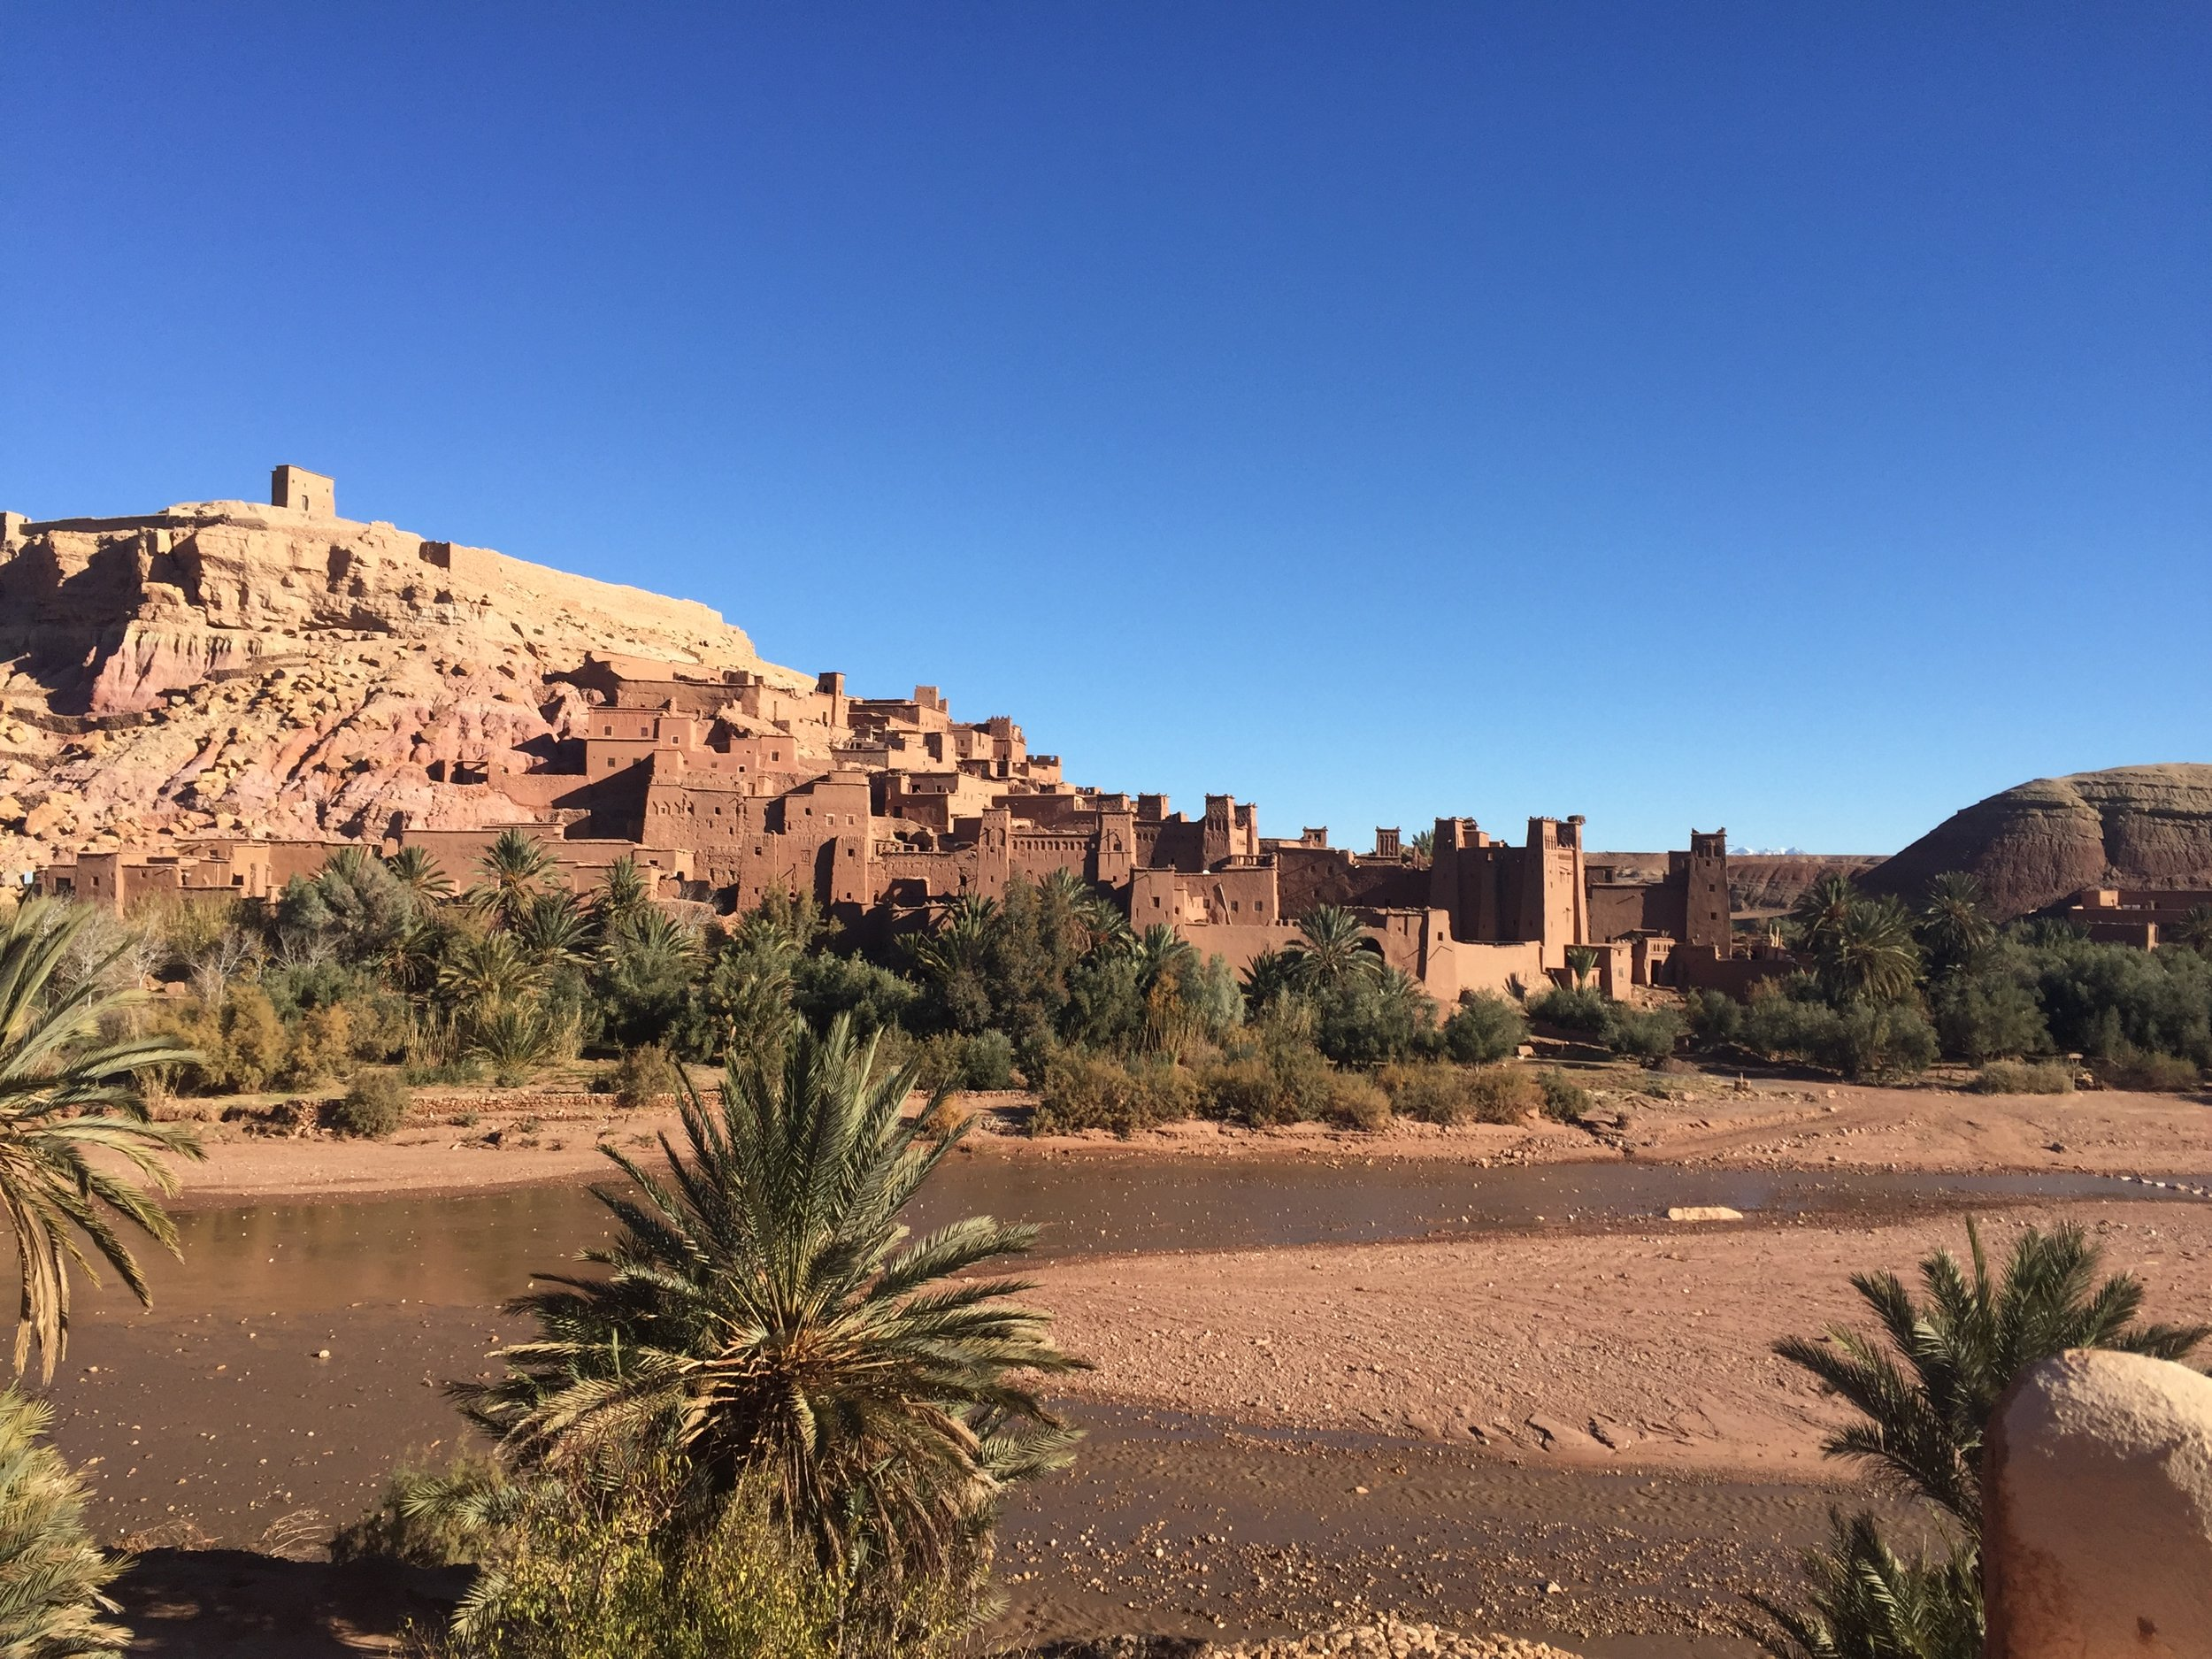 Ait Ben Haddou - Situated on what was probably the country's most popular caravan trade route lies the village of Ait Ben Haddou, so rich in history UNESCO even said so. Get lost in the maze-like walled village, and maybe even climb to the top!